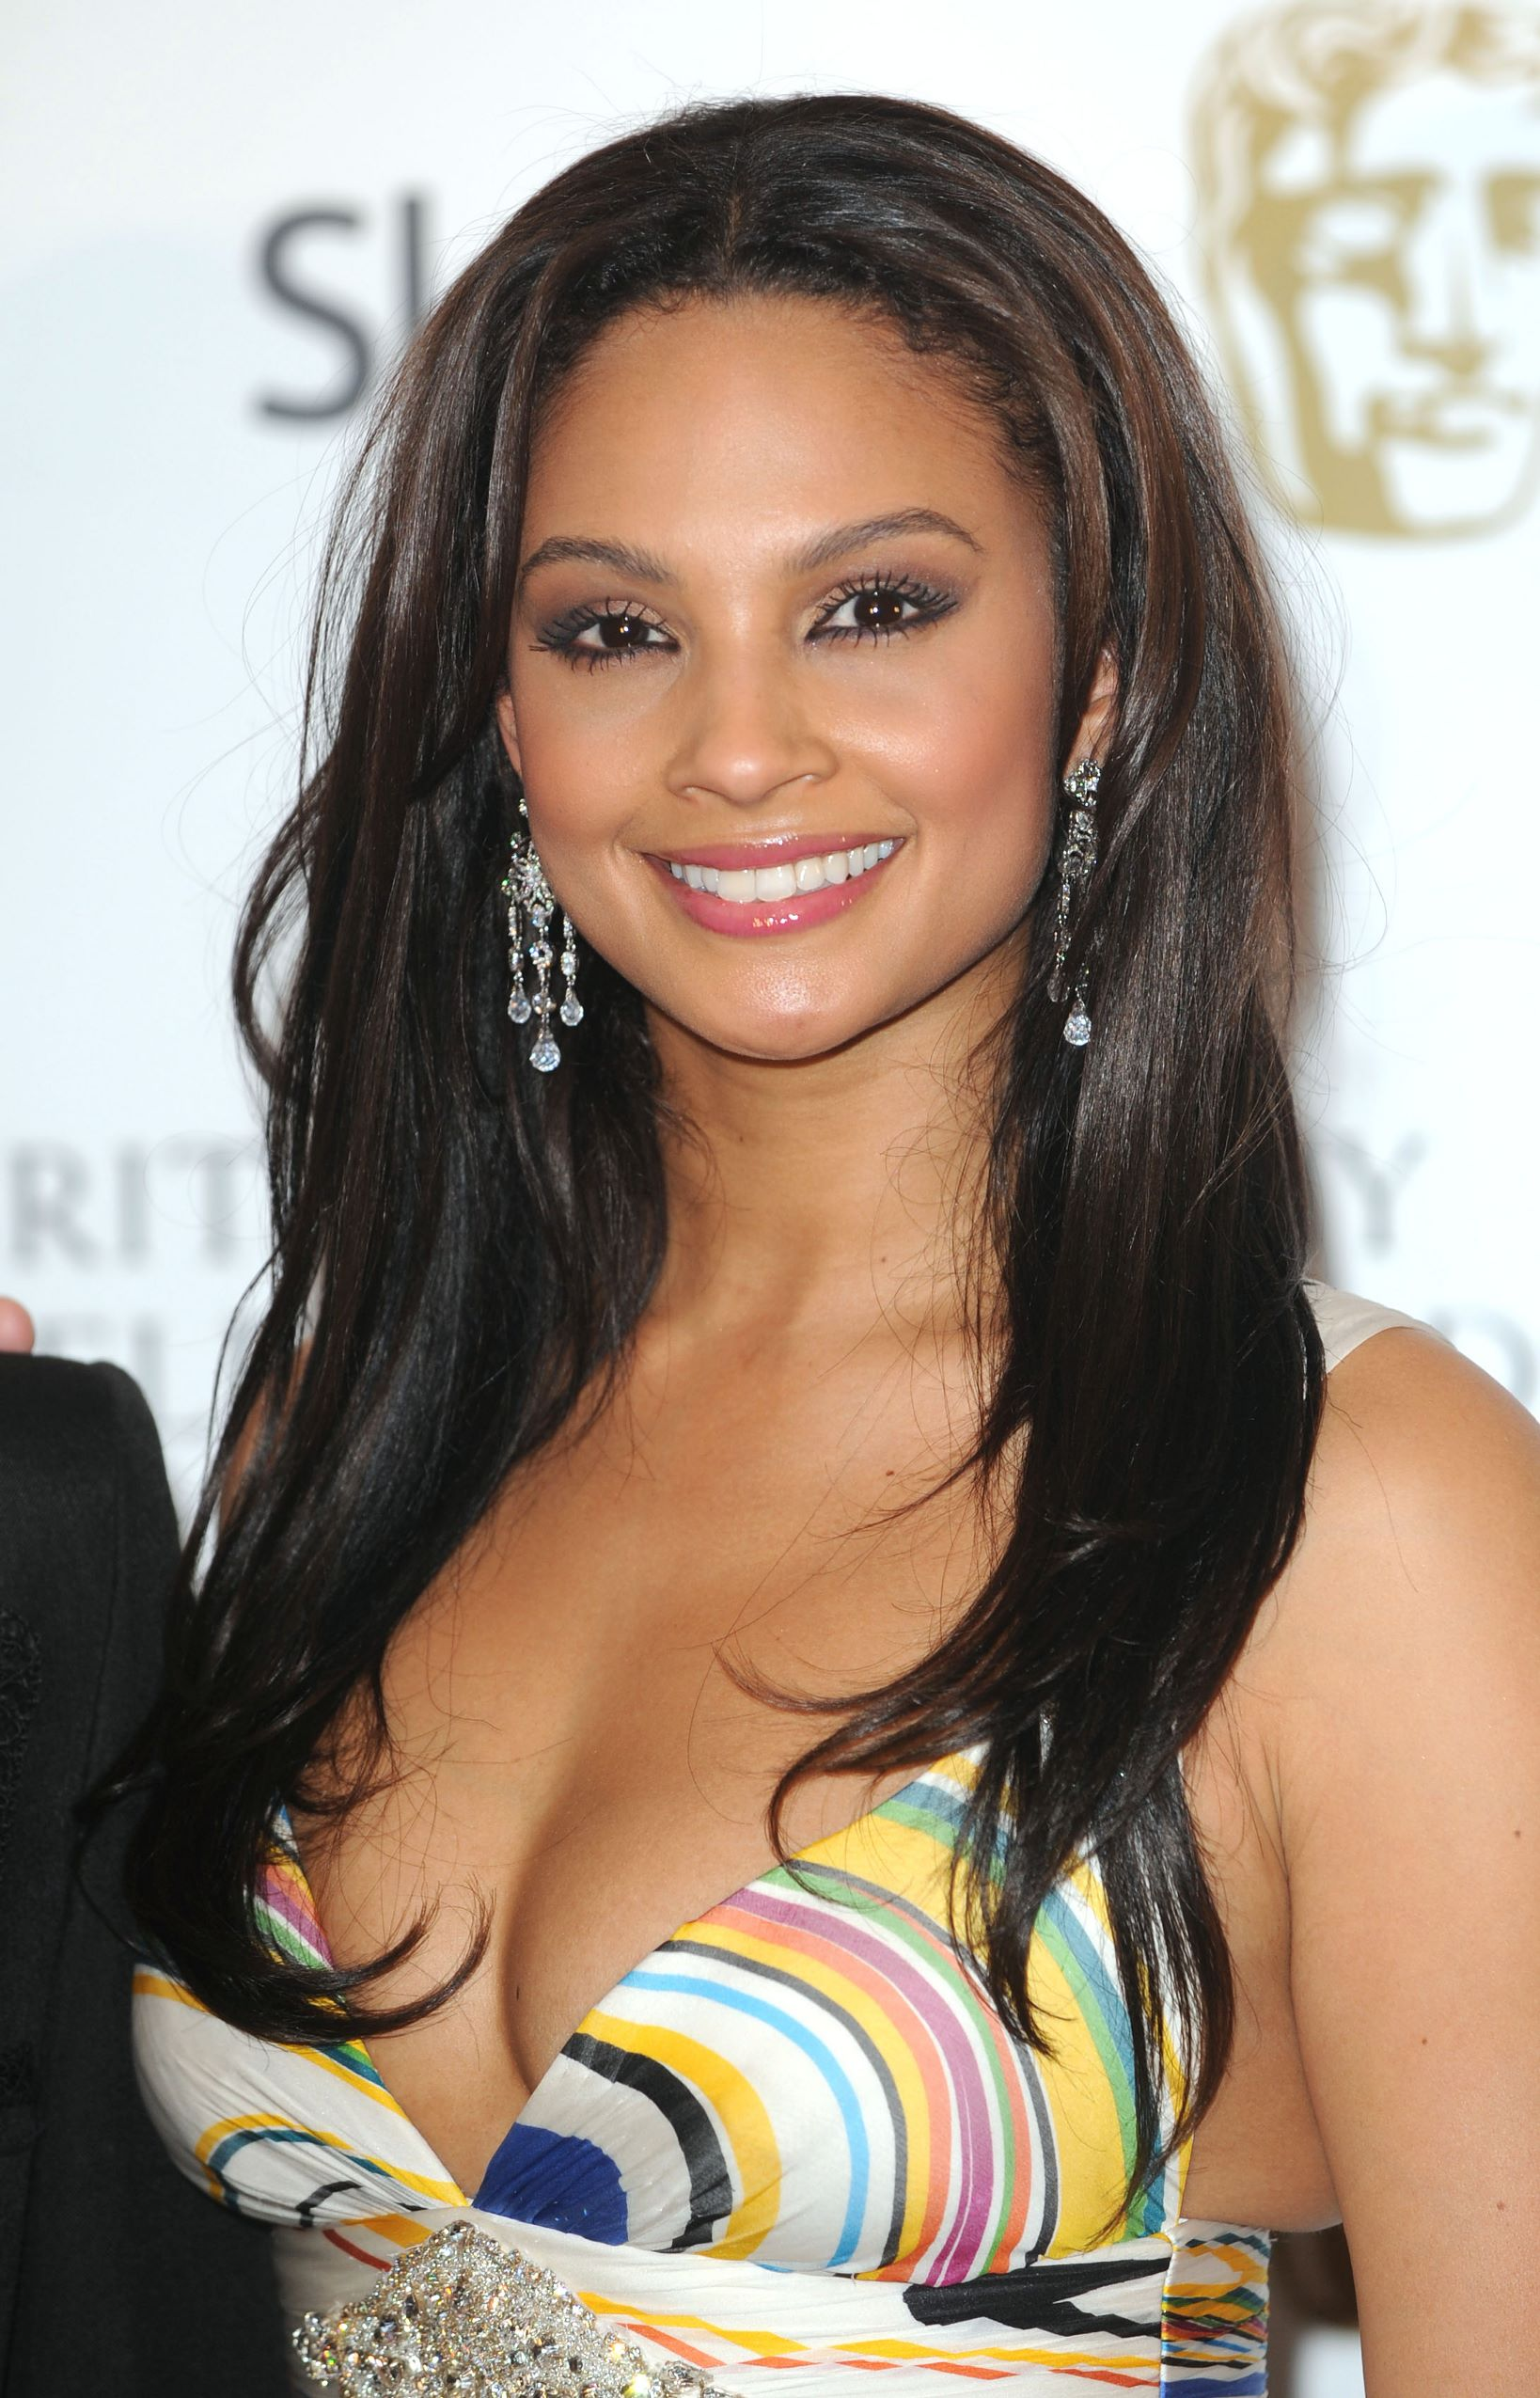 Alesha Dixon photo #89555